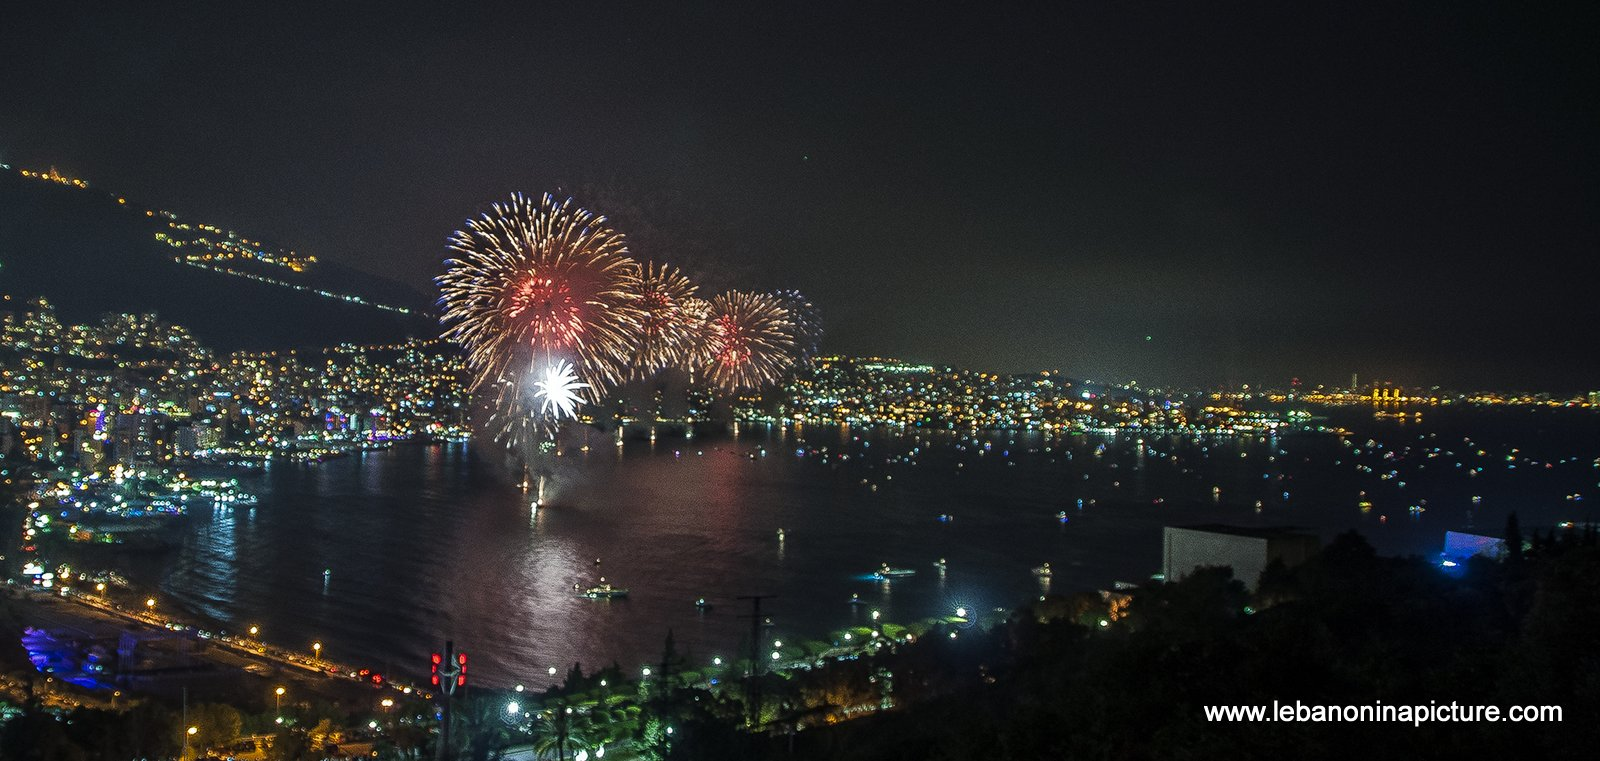 Jounieh Fireworks 2017 - Red, Gold and Blue